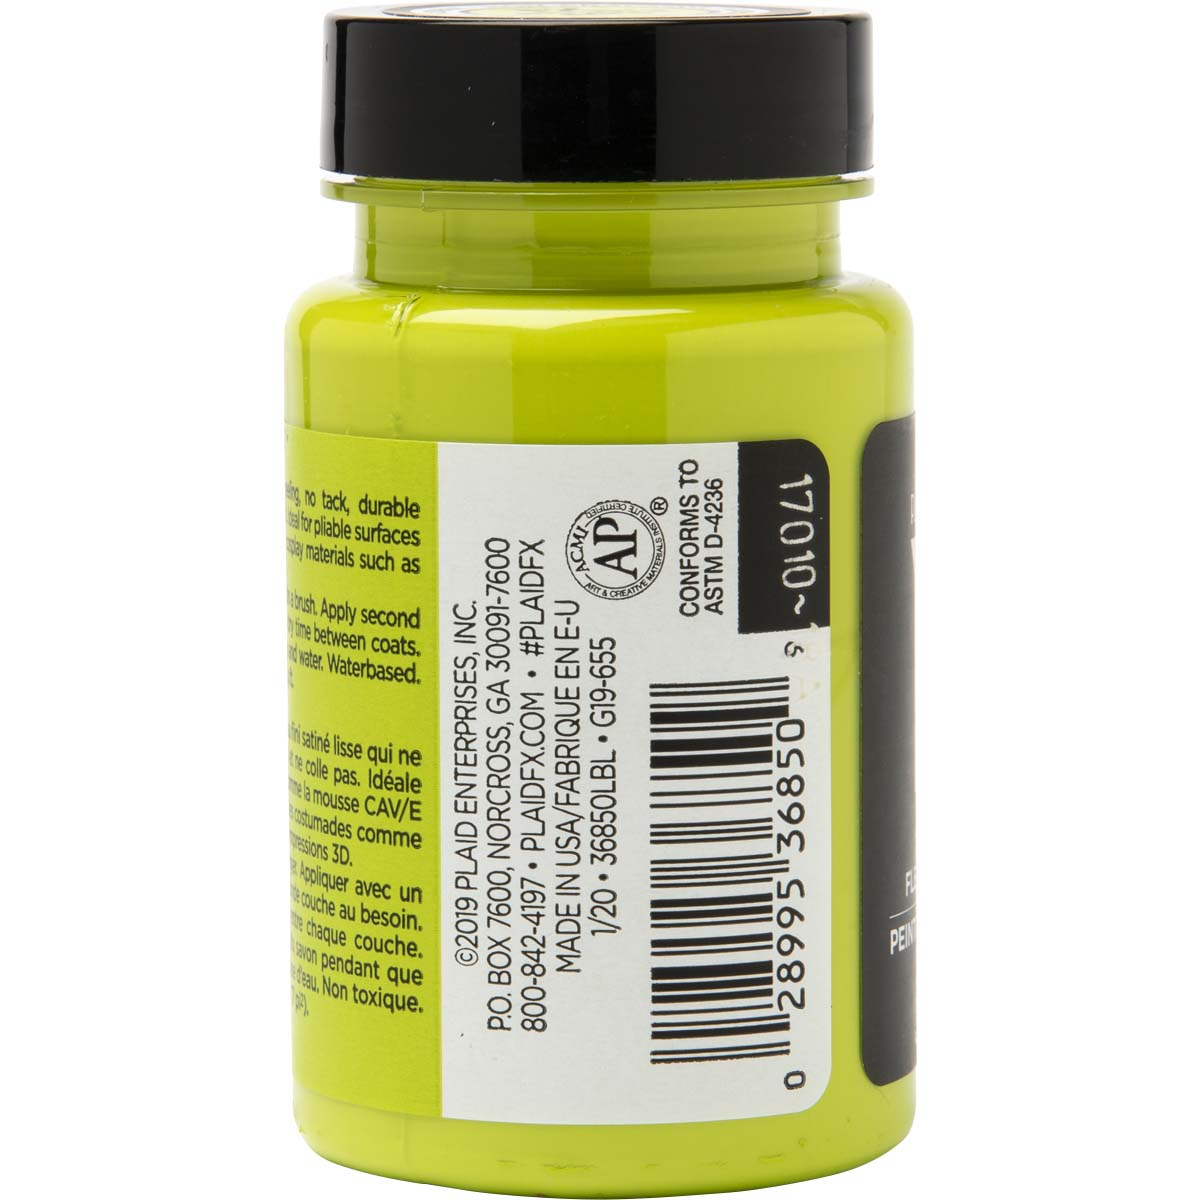 PlaidFX Smooth Satin Flexible Acrylic Paint - Goblin Green, 3 oz. - 36850